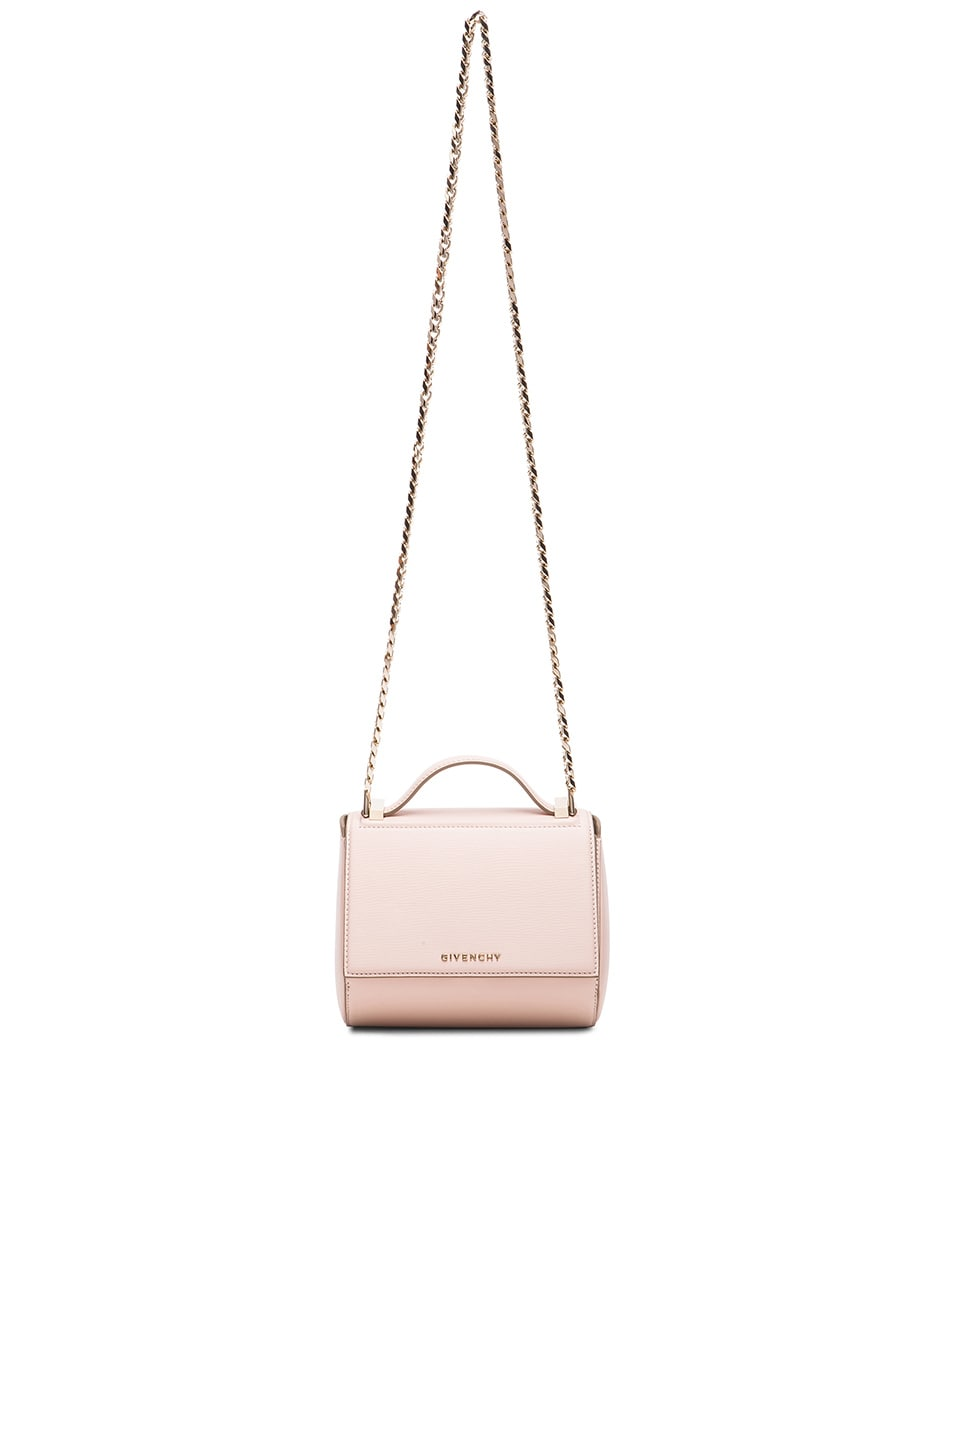 c067457e29 Image 1 of Givenchy Mini Chain Pandora Box in Nude